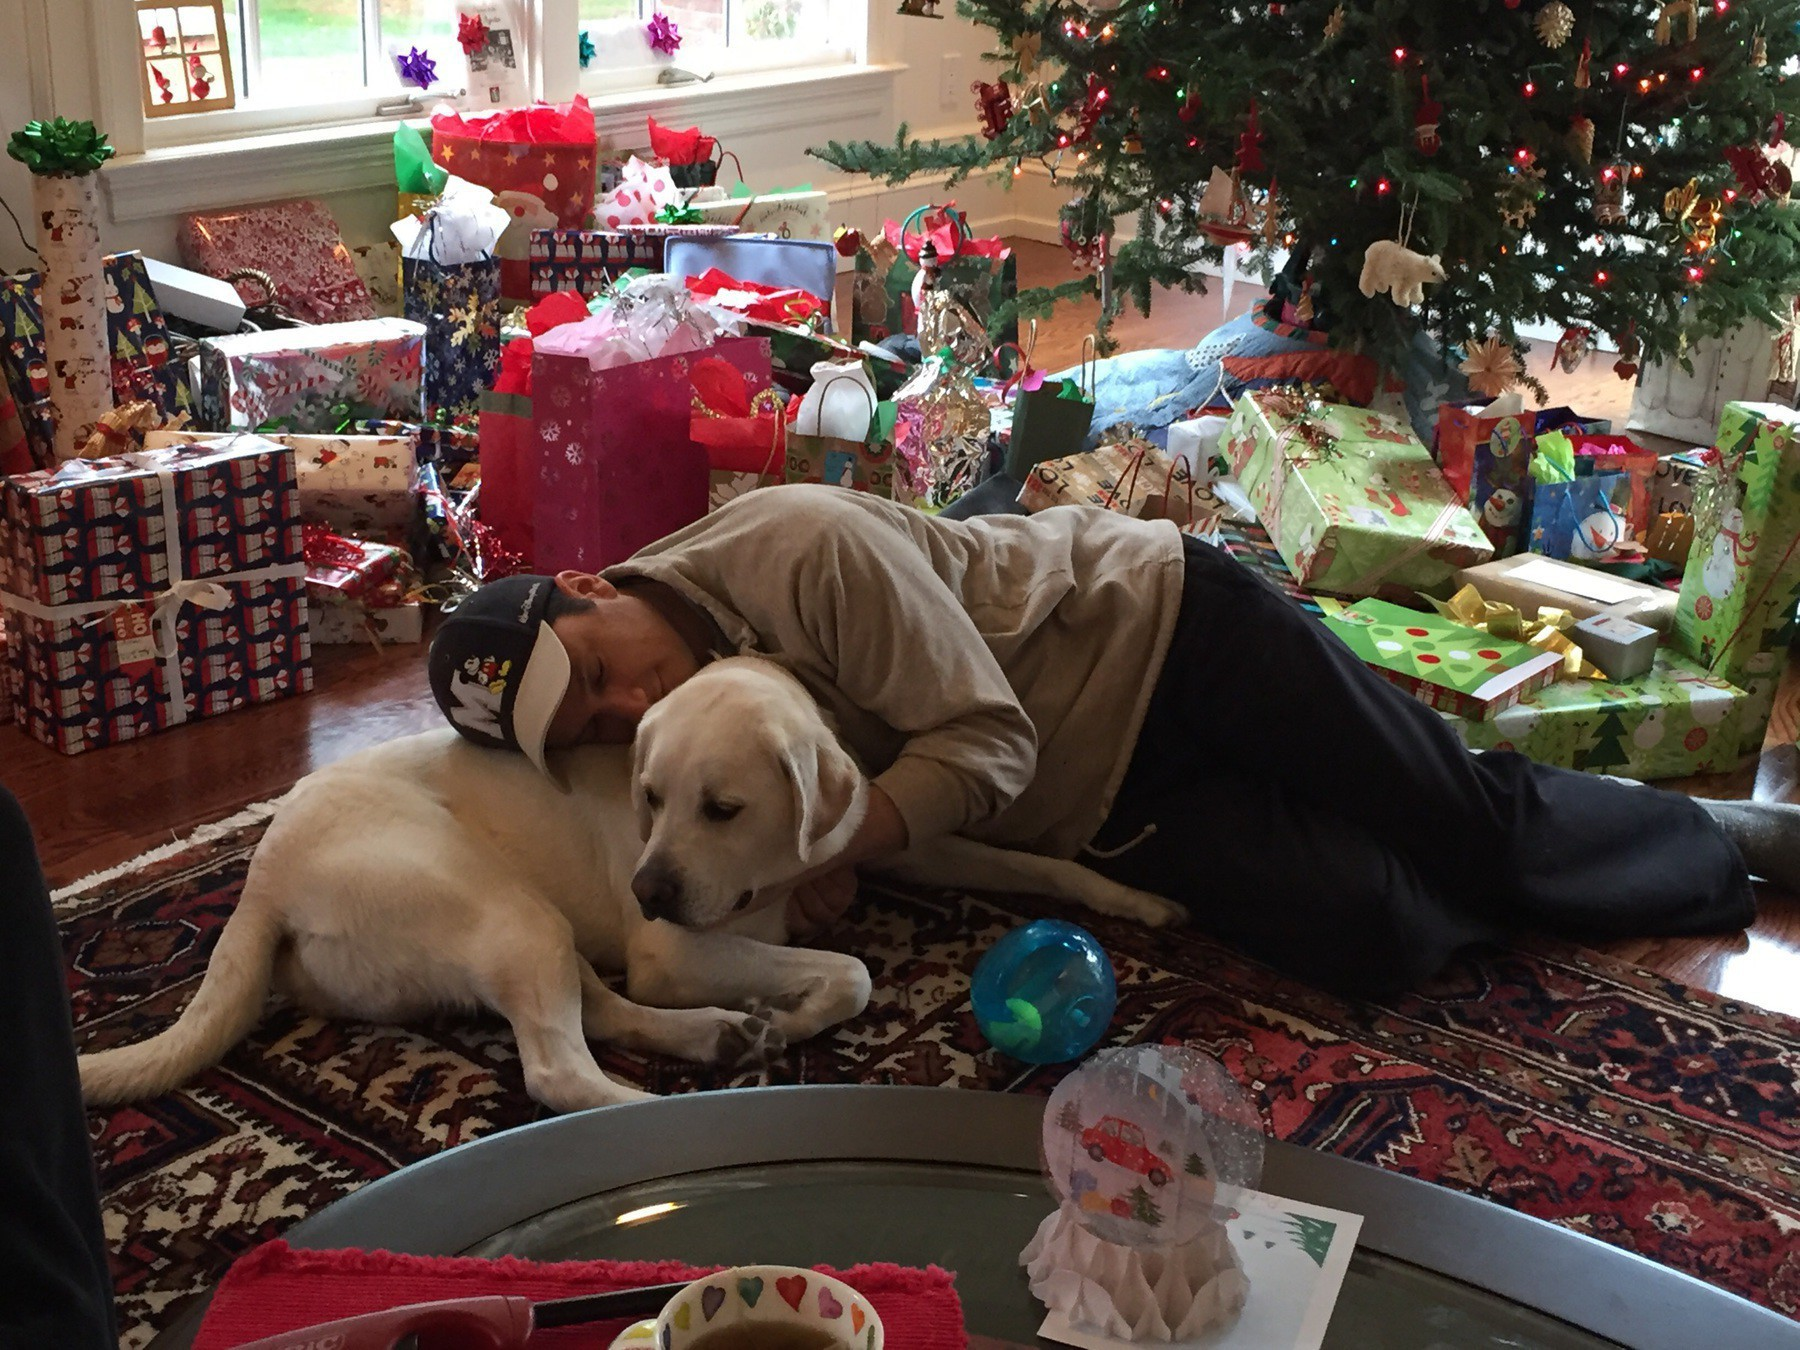 Man is sweetpants cuddling with a yellow lab and surrounded by presents.